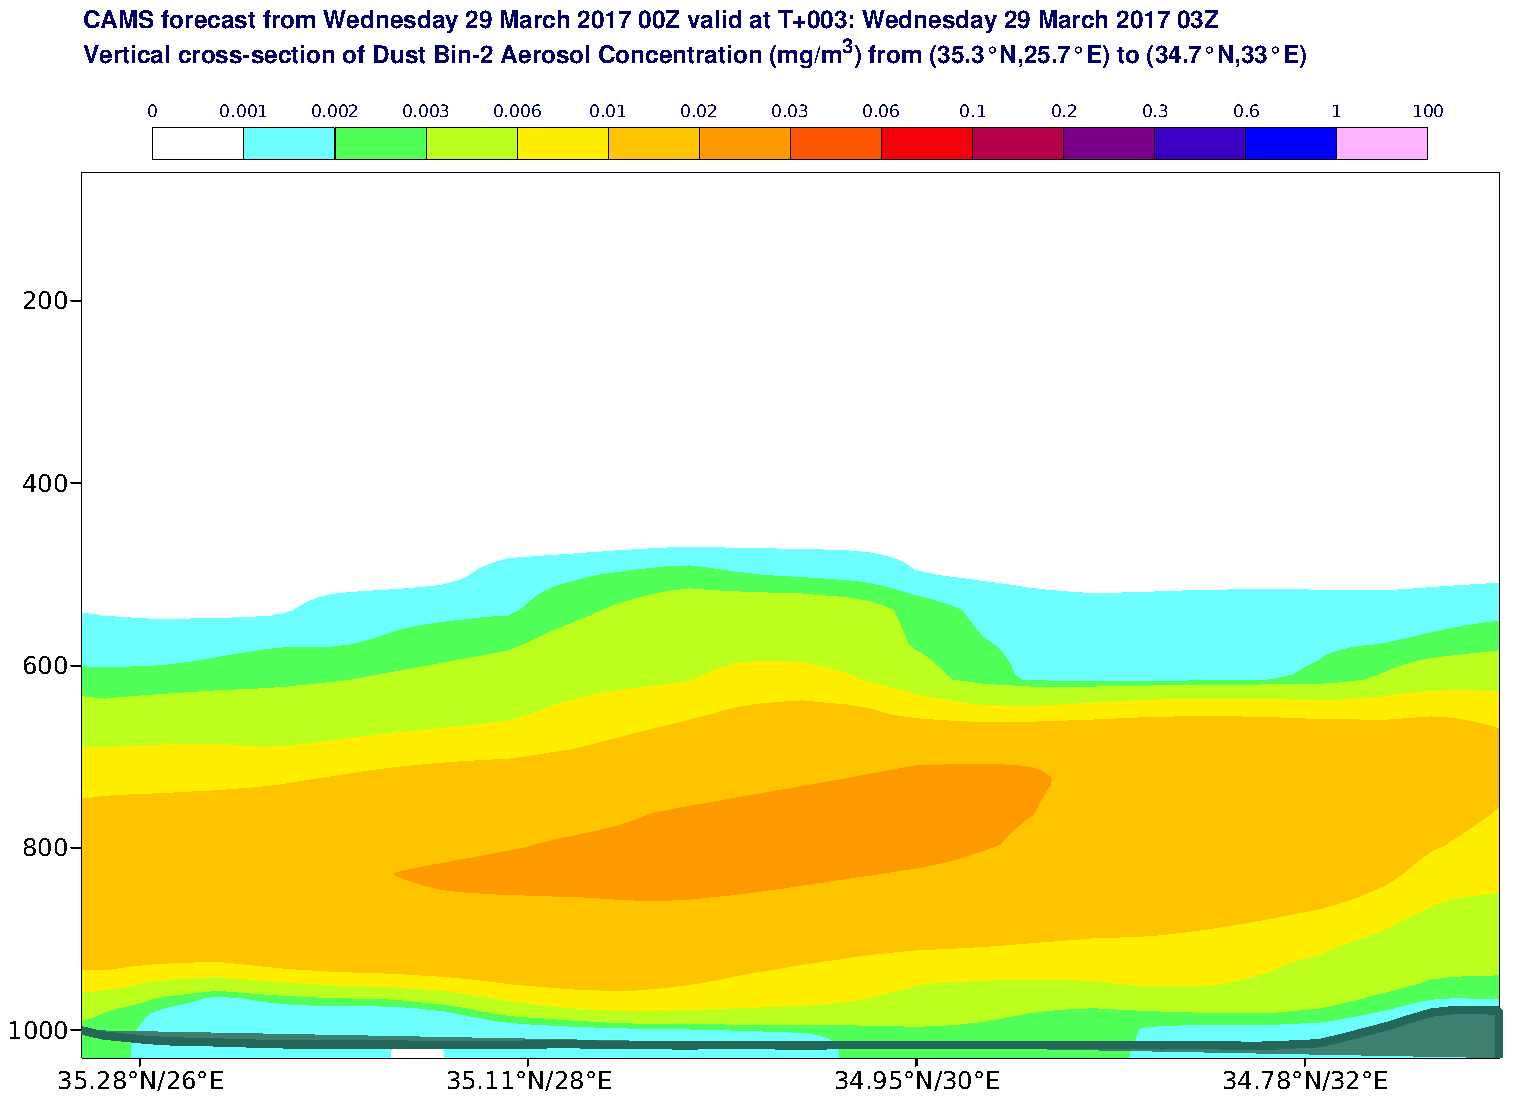 Vertical cross-section of Dust Bin-2 Aerosol Concentration (mg/m3) valid at T3 - 2017-03-29 03:00